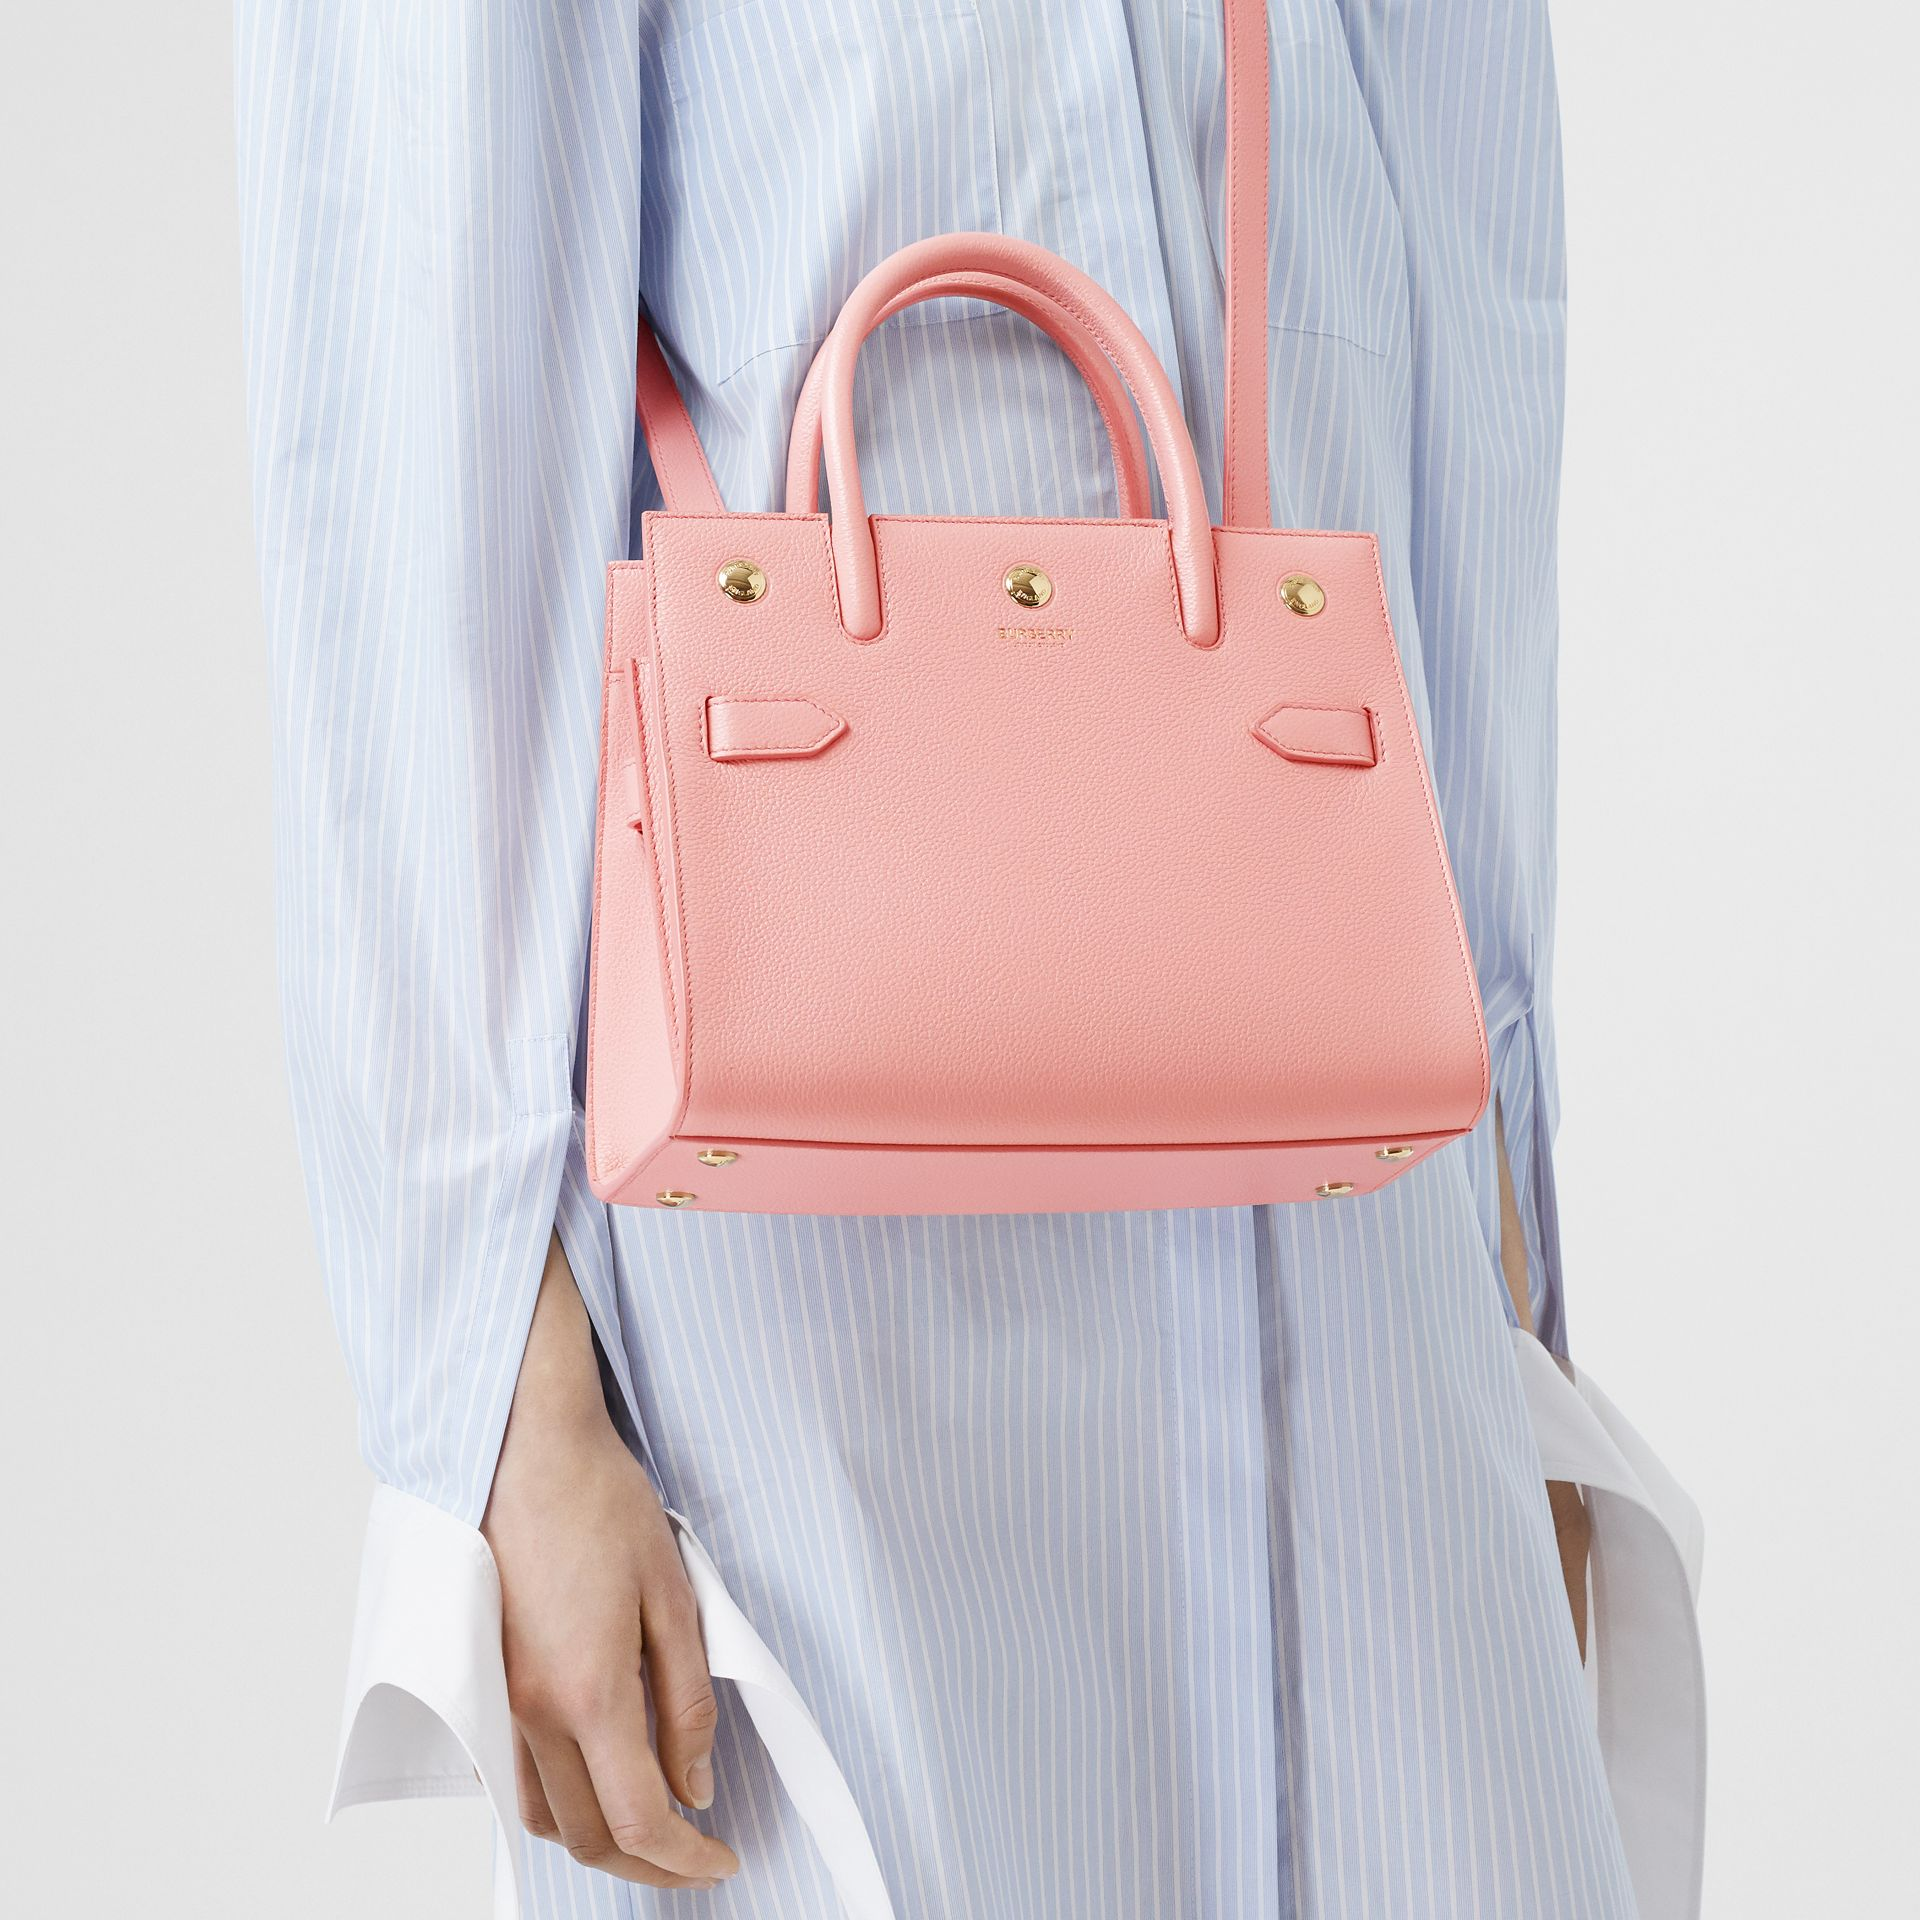 Mini Leather Two-handle Title Bag in Blush Pink - Women | Burberry United Kingdom - gallery image 2